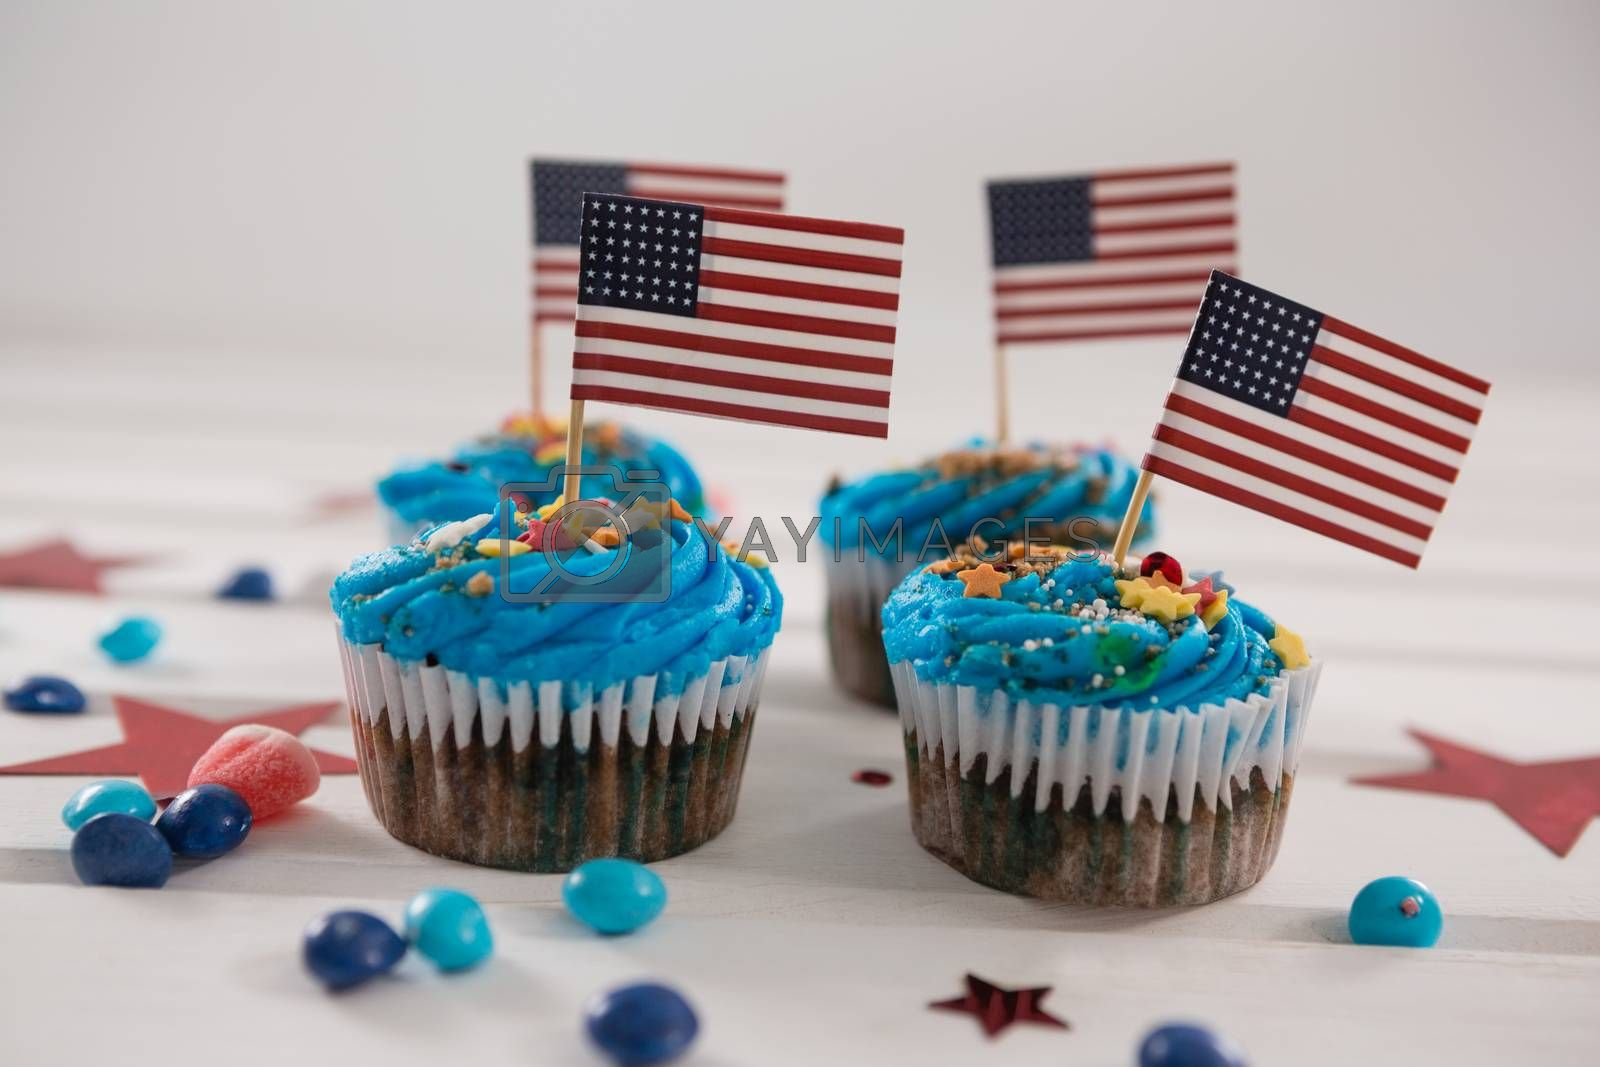 Cupcakes decorated with 4th july theme on wooden table